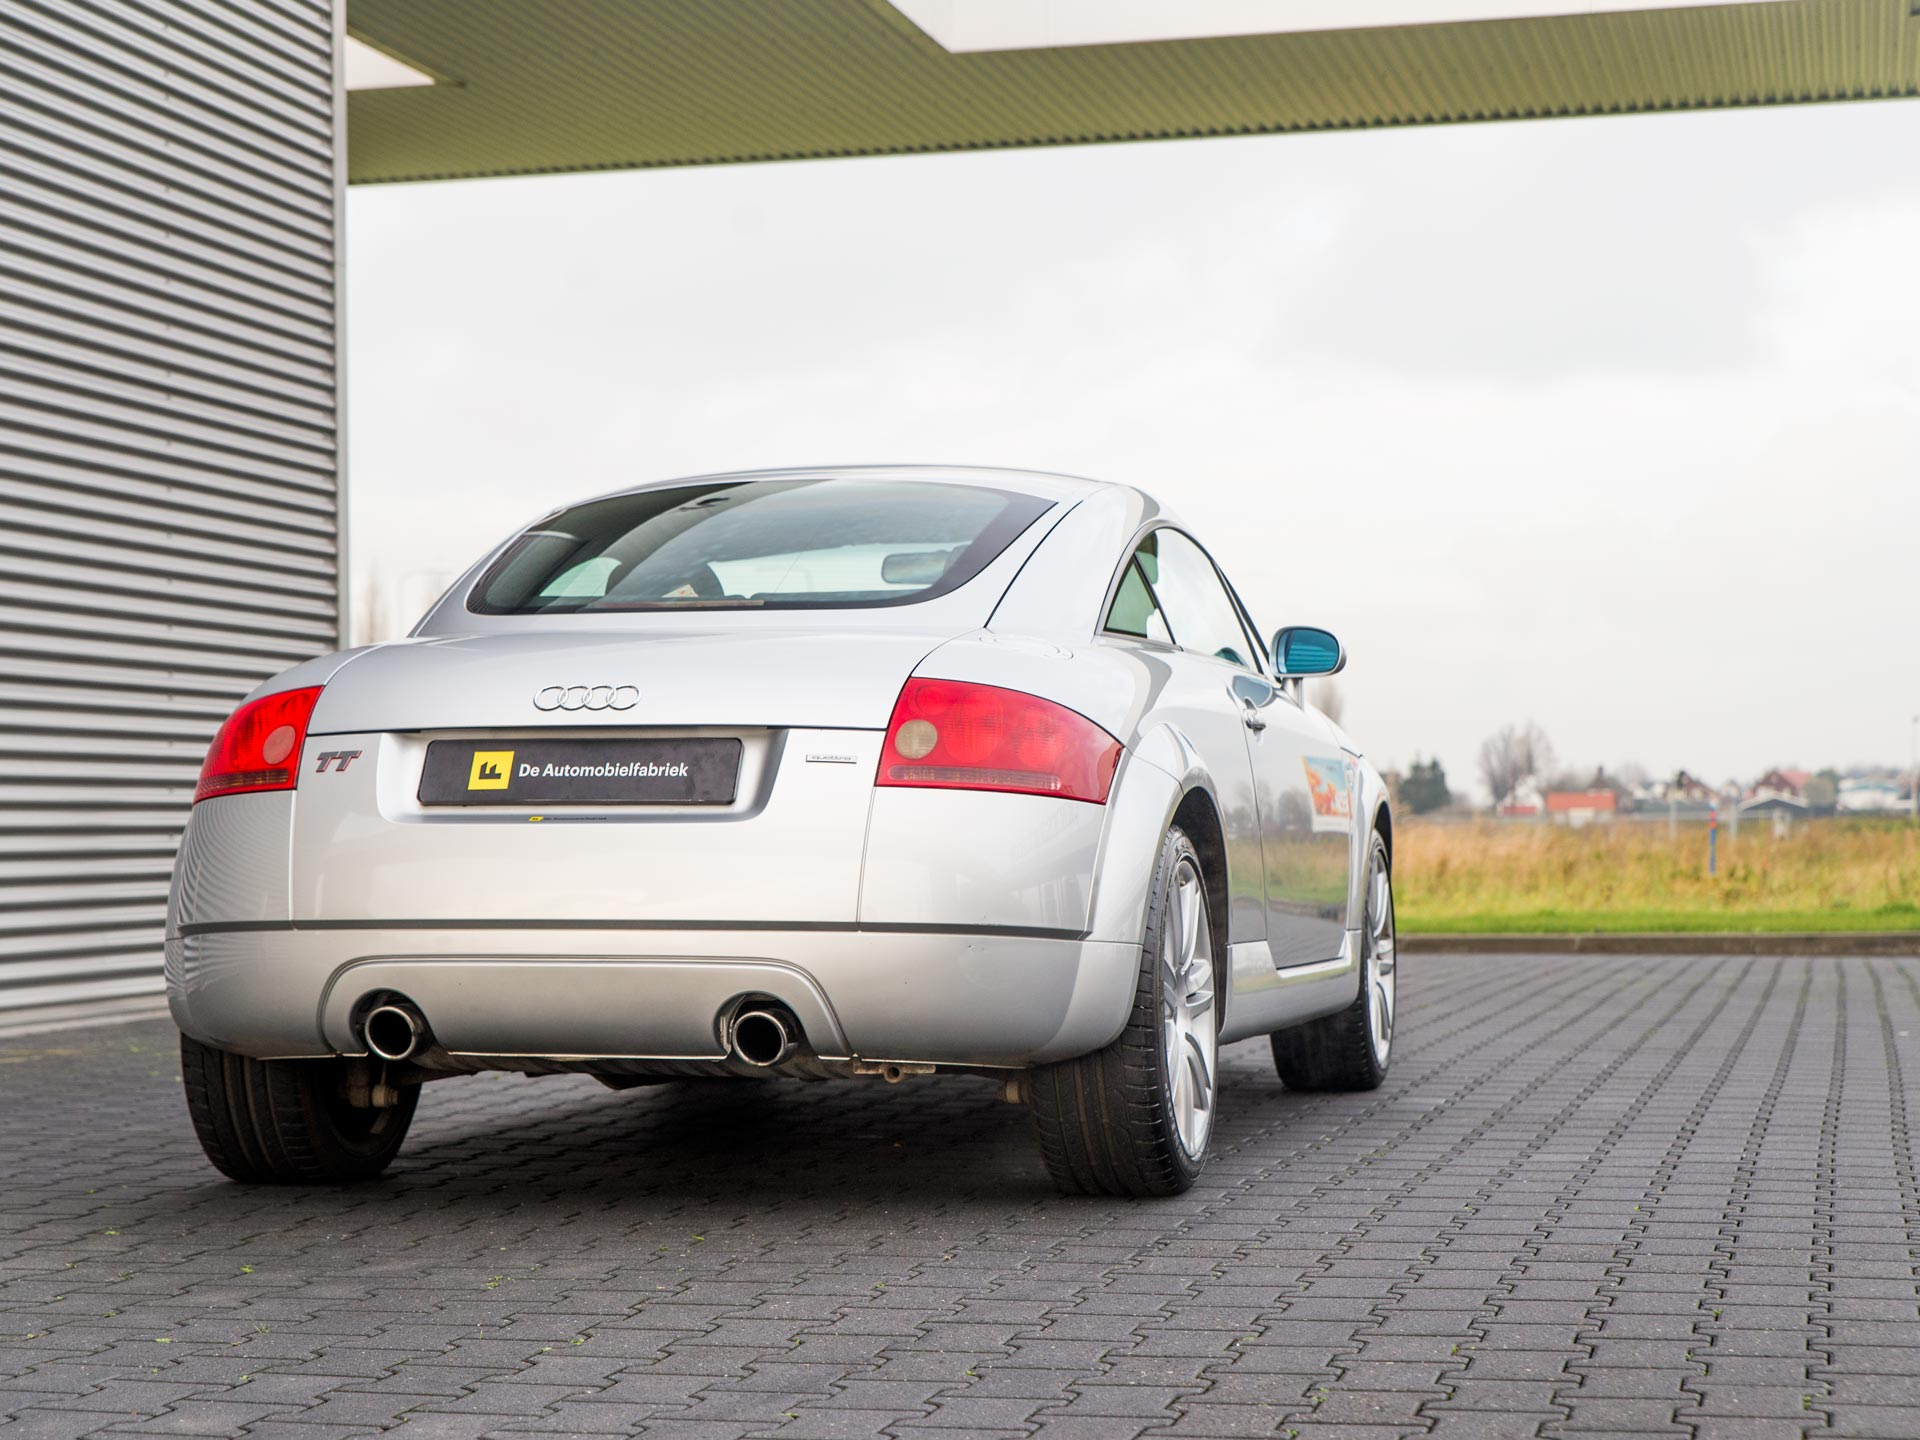 Tweedehands Audi TT occasion